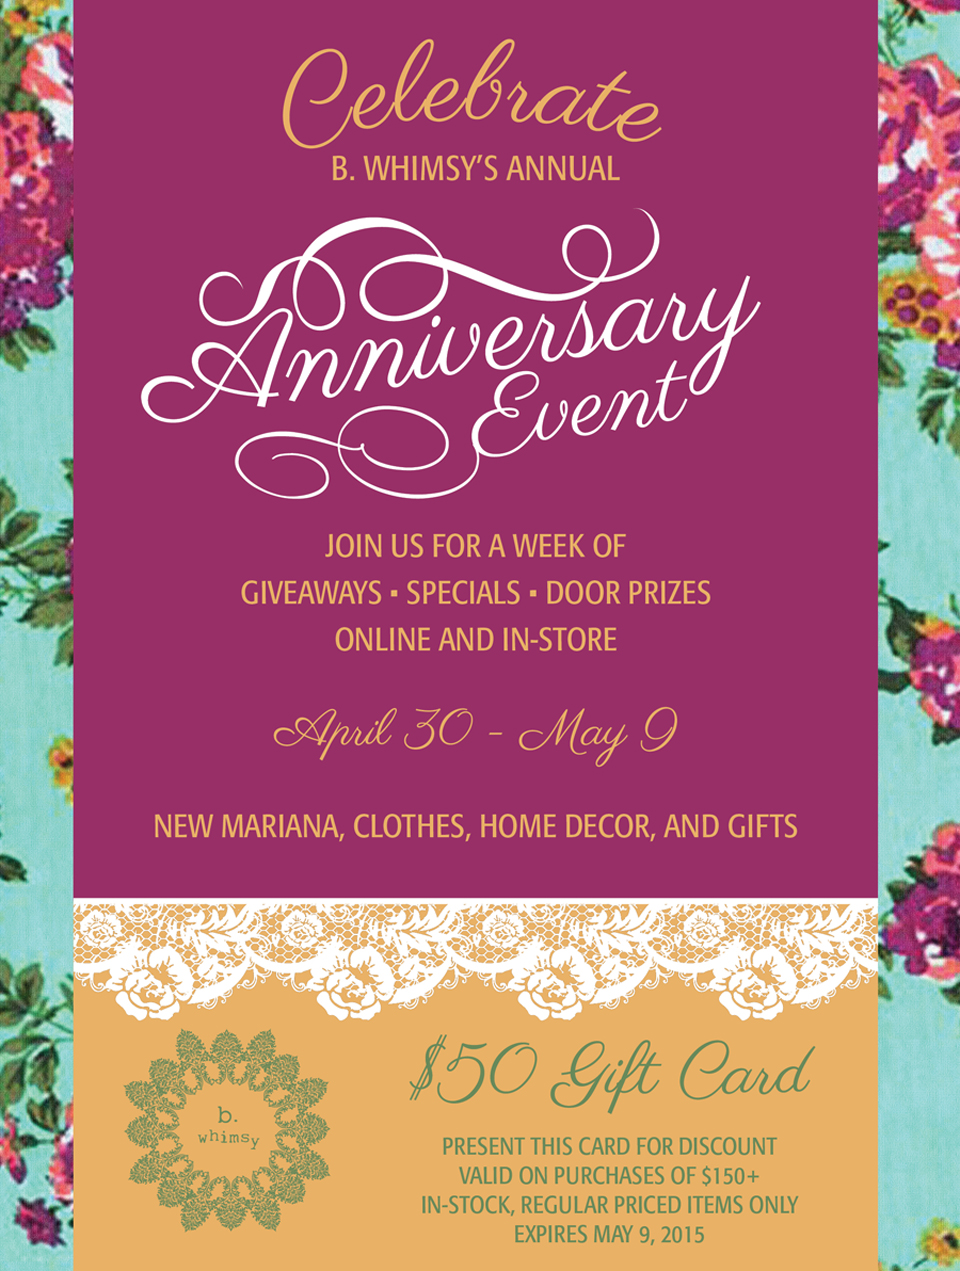 Anniversary Event by B. Whimsy